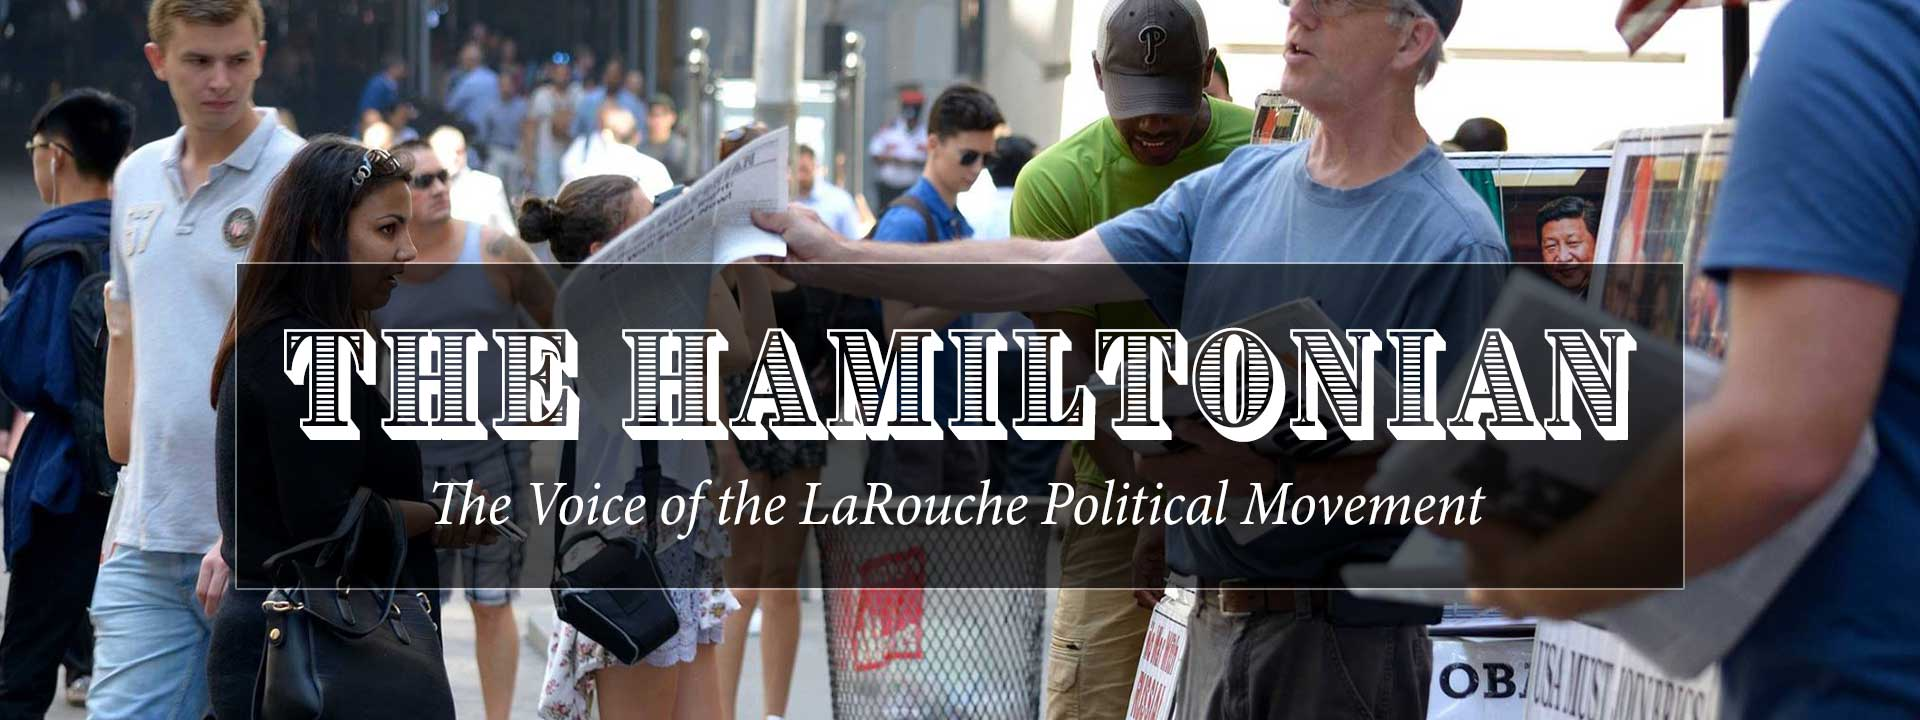 https://larouchepac.com/sites/default/files/ham-banner-I.jpg